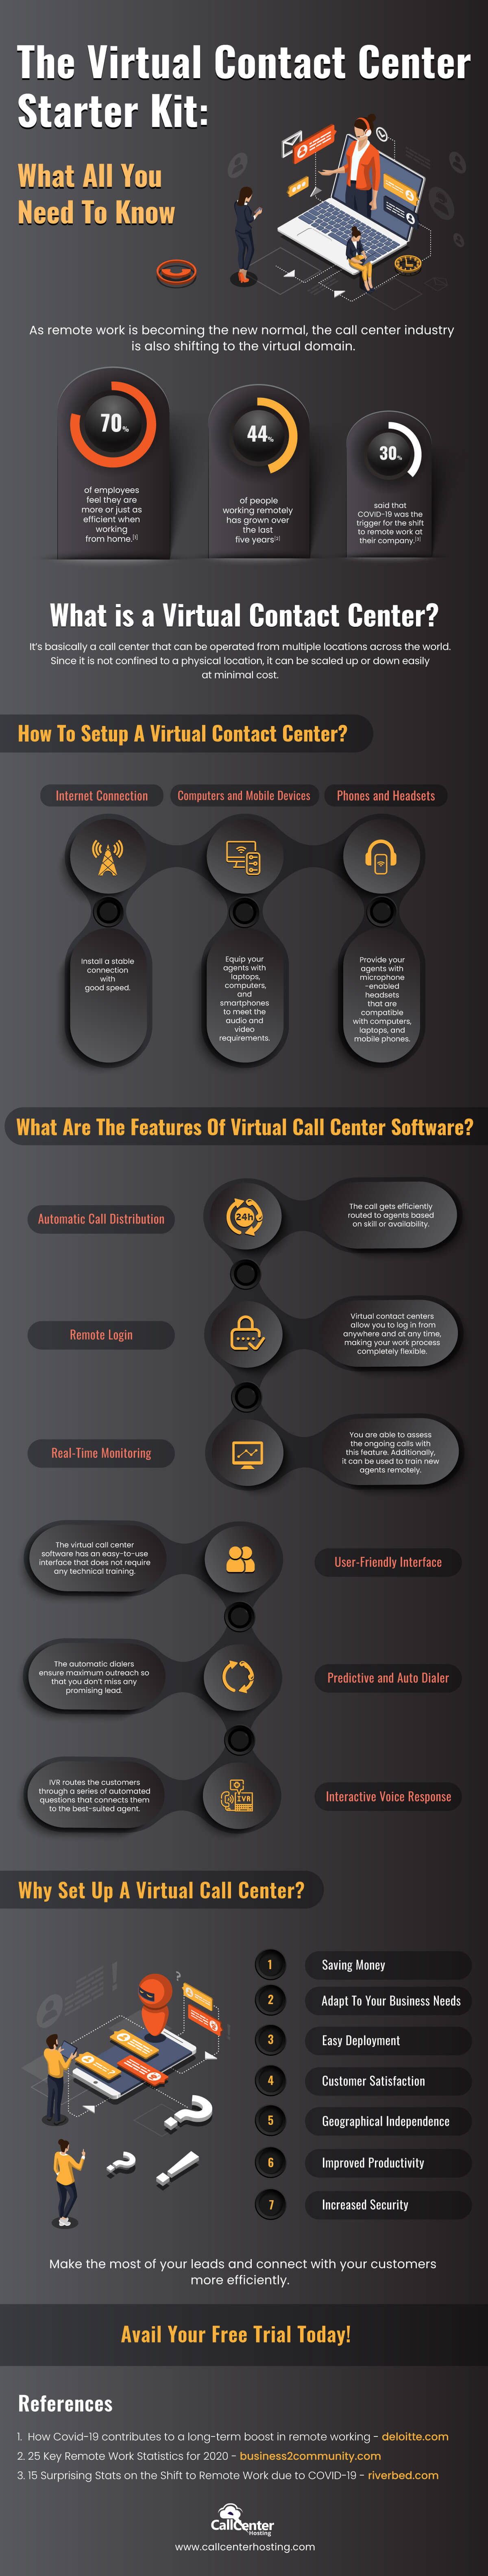 [Infographic]Virtual Contact Center Kit